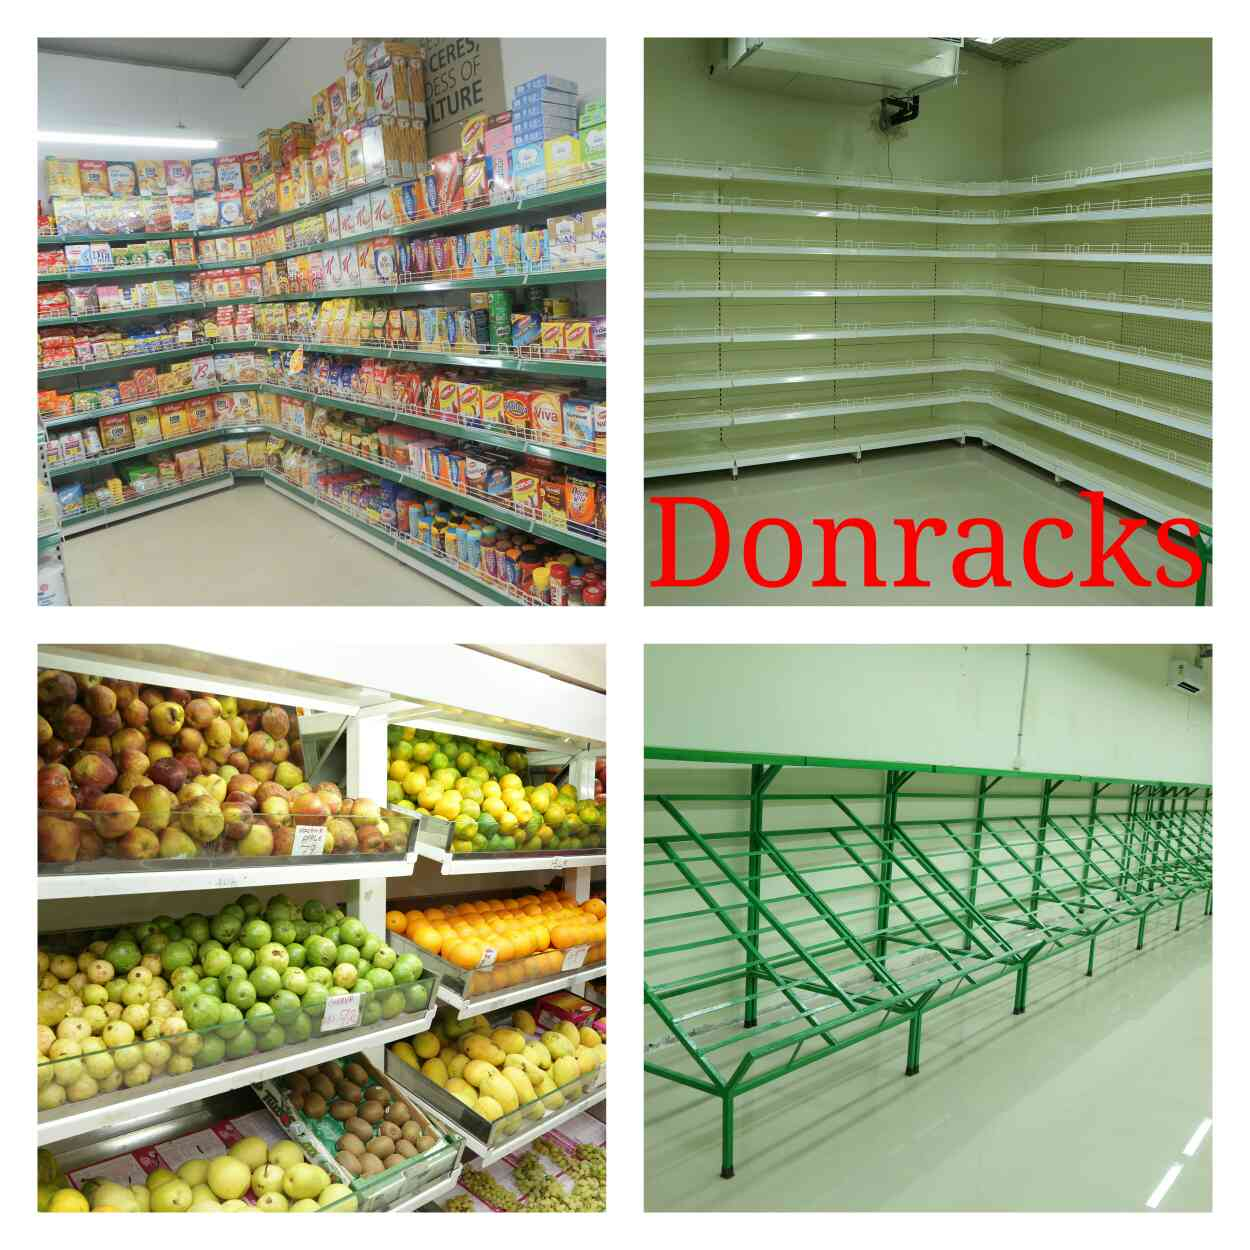 Best Manufacturer of Supermarket Racks in India.  Donracks is the most popular brand of supermarket racks for more than 20 years. Many India's leading showrooms like Reliance, Heritage supermarkets, Viveks showrooms, More showrooms, Pothys, Spinach showrooms, Food World supermarkets, Grace Supermarkets, Just Born showrooms, Next showrooms, Europa showrooms, Kannan departmental stores, Chennai Silks showrooms, Nilgiris supermarkets, Sri Krishna Sweets shops, Videocon showrooms, Indiabulls showrooms, Lifestyle showrooms, Reliance Trends showrooms, Spencer's supermarkets, Croma Showrooms, Jeyachandran Showrooms prefers only Donracks. For high quality steel racks for your supermarket choose Donracks -